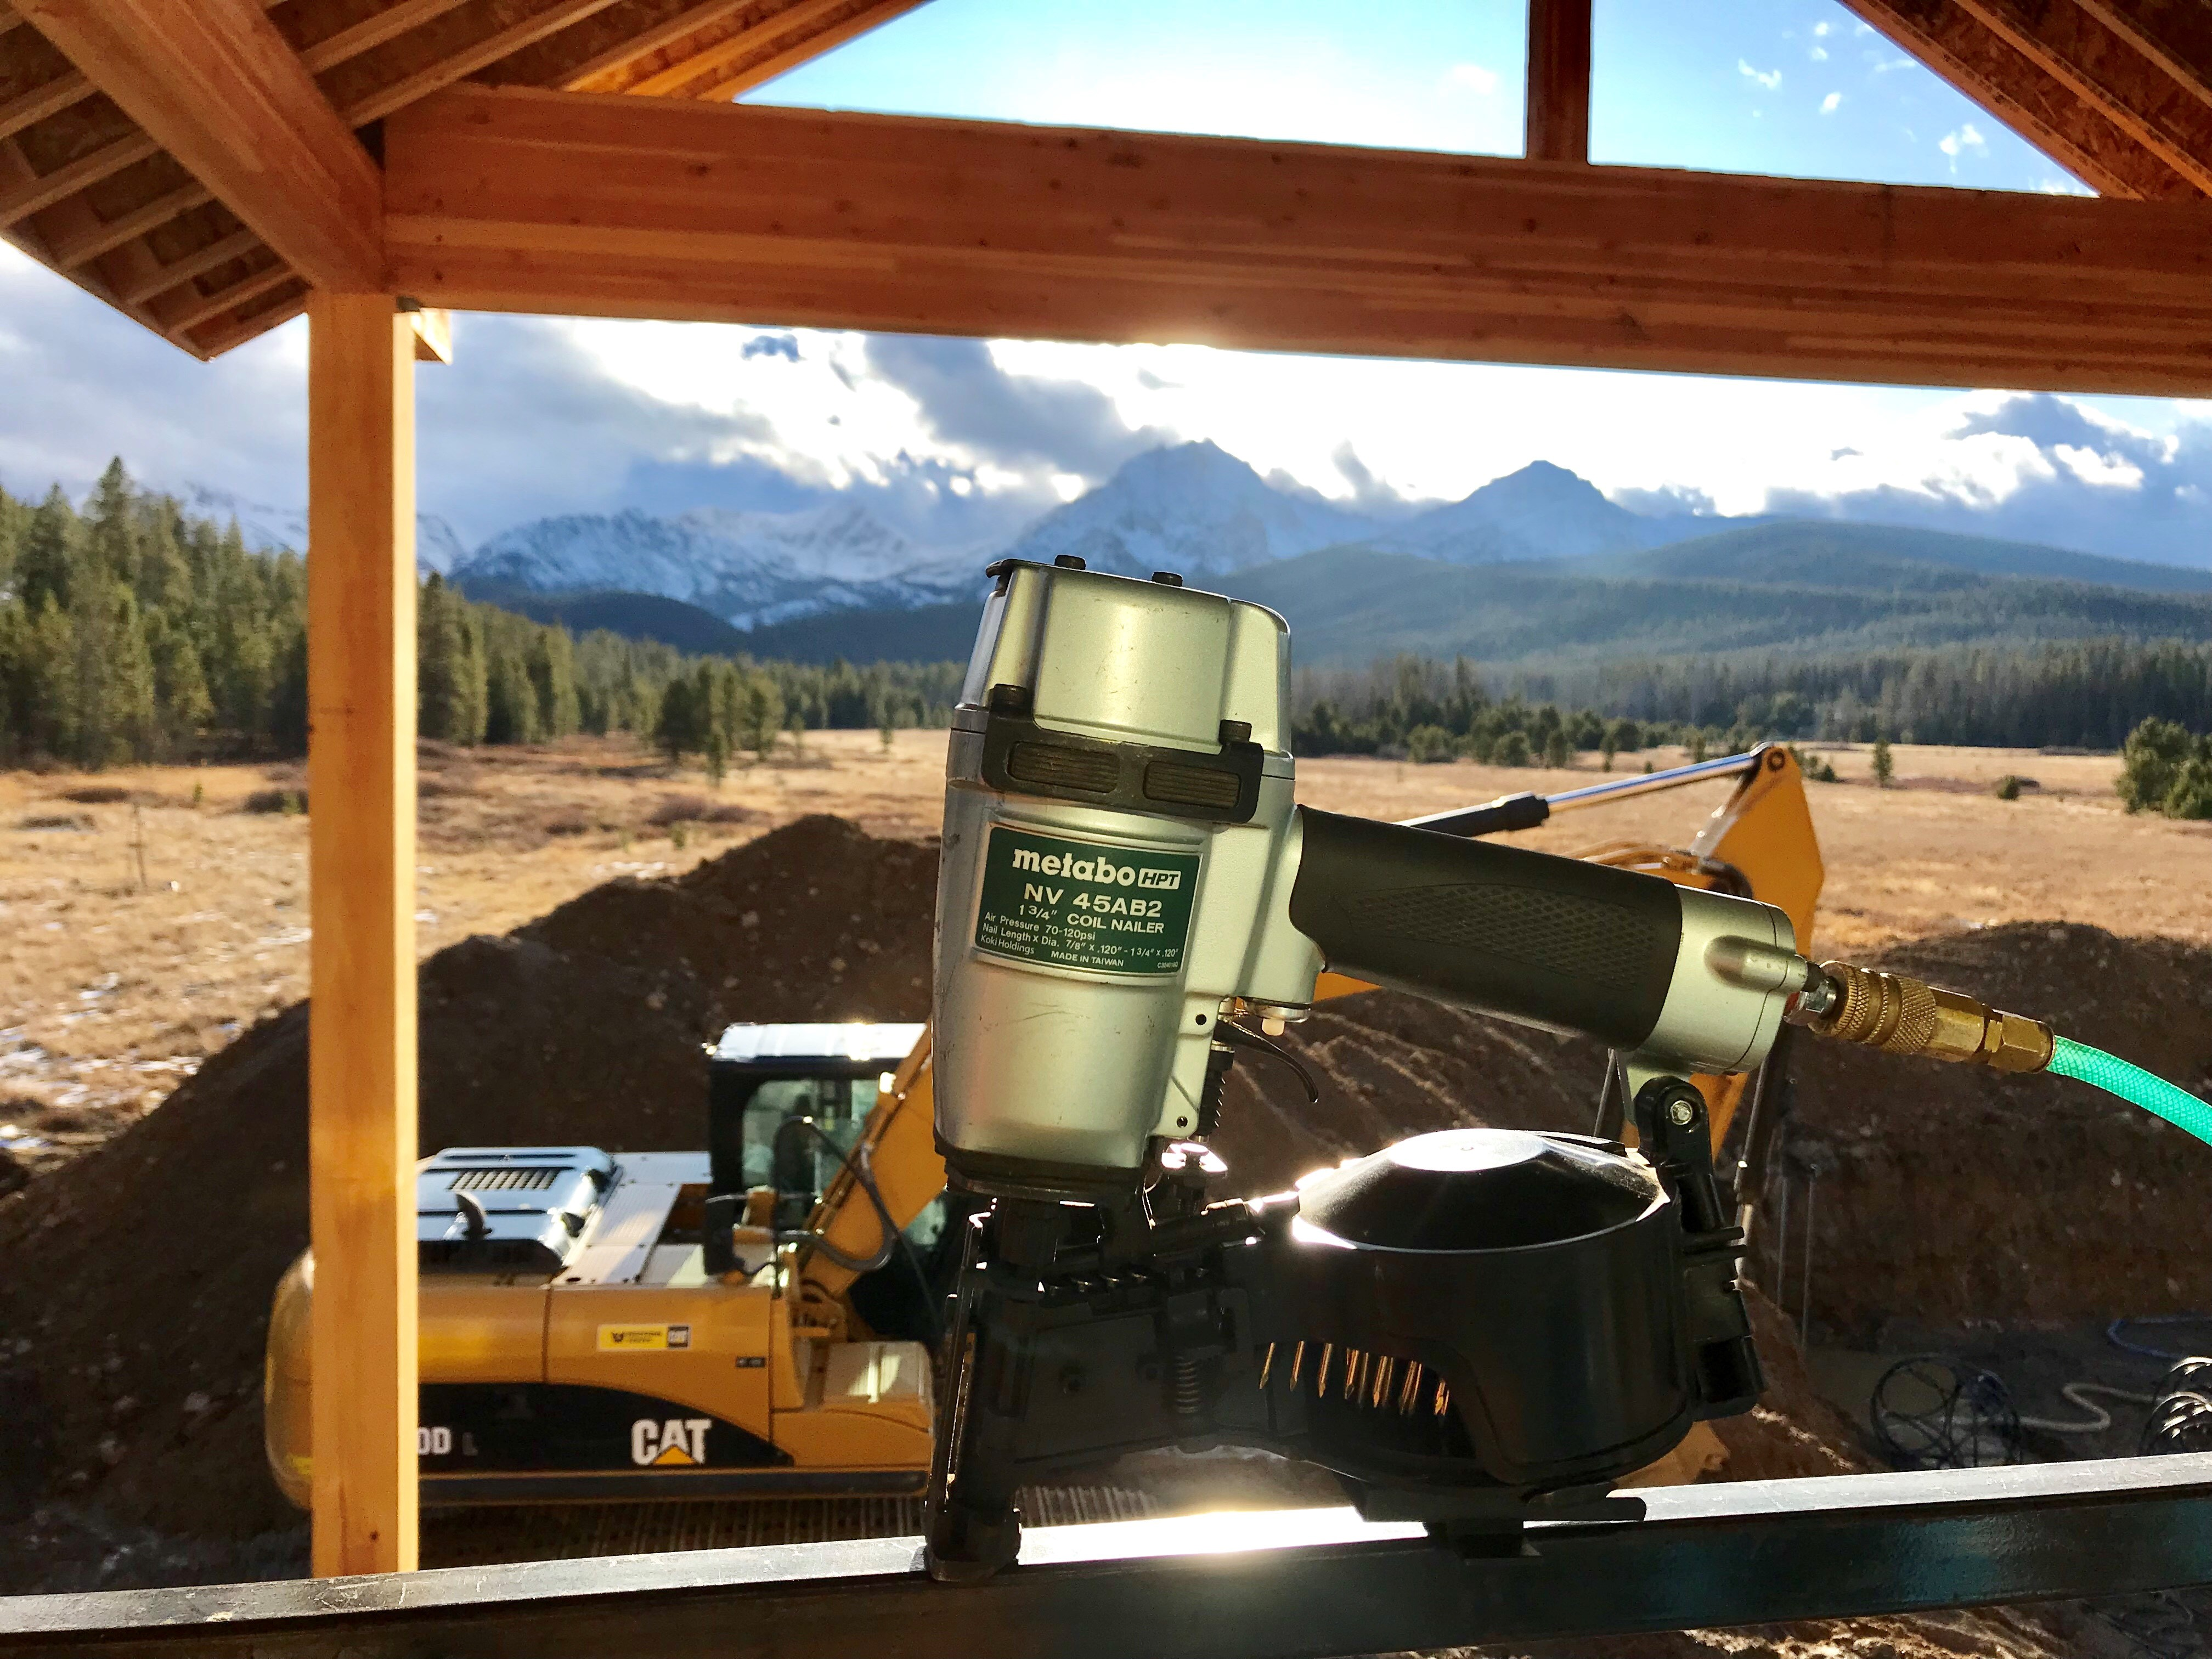 NV45AB2 roofing nailer Lifestyle